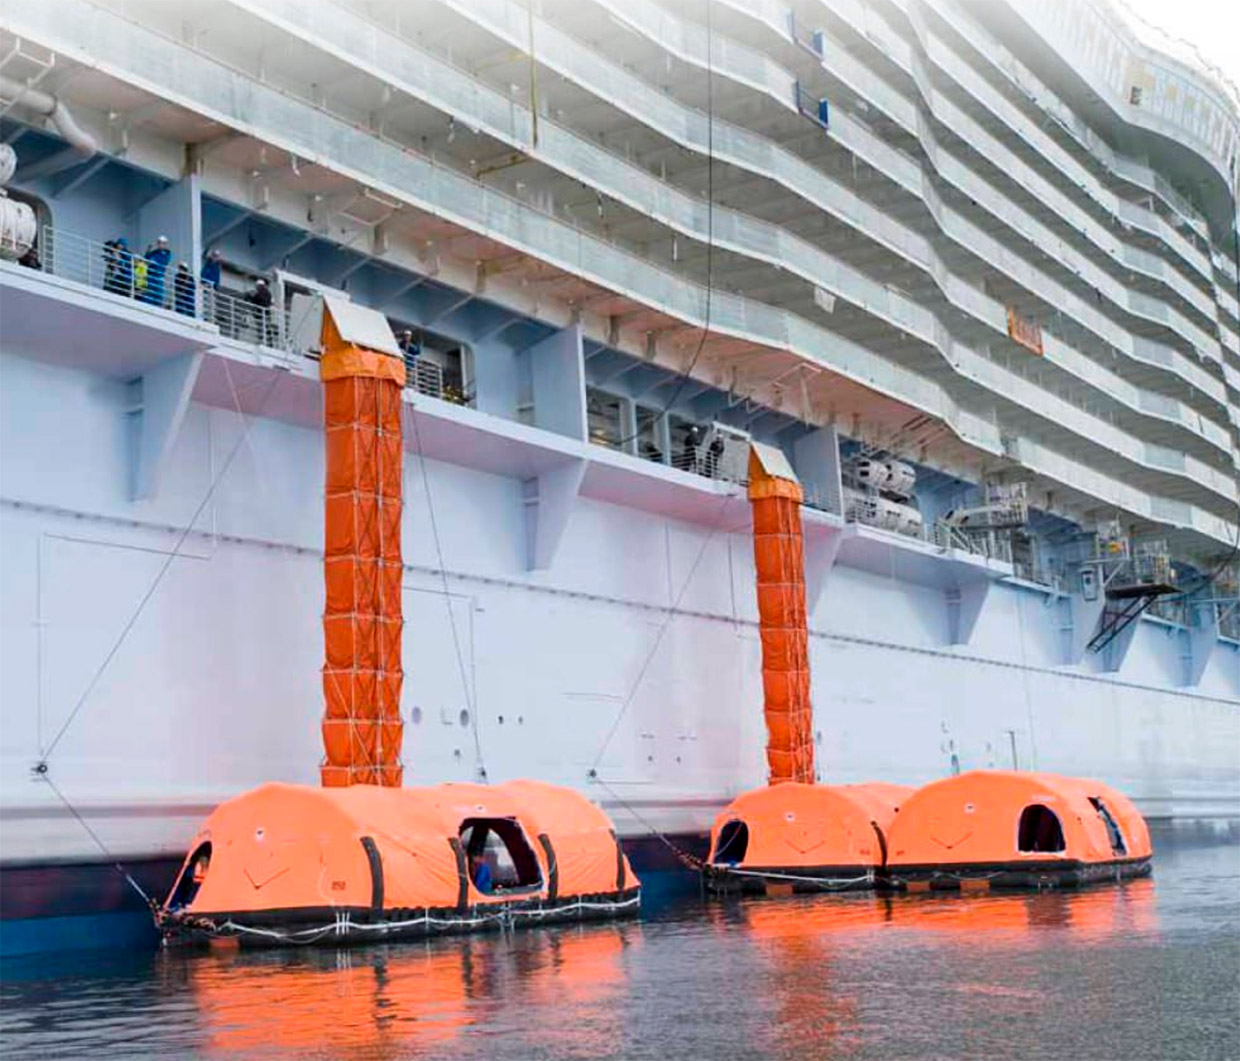 Inflatable Lifeboat and Chute System